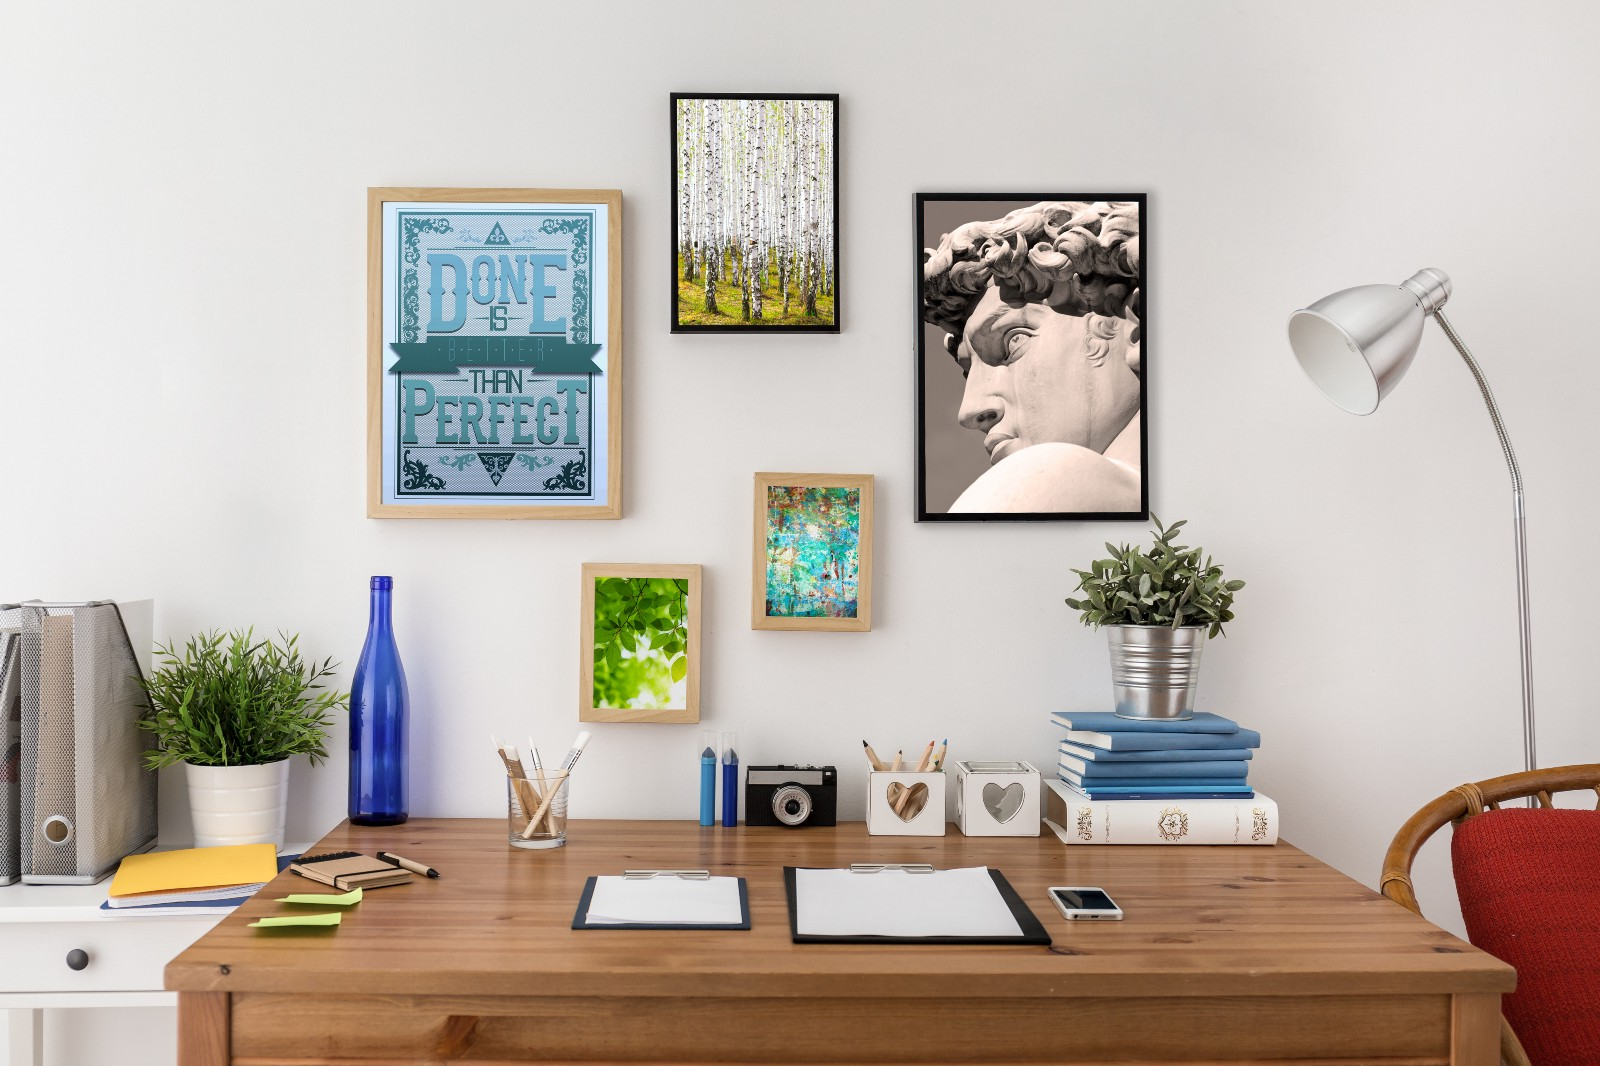 Several lazybones steps to a minimalist working space for Pixers your walls and stuff